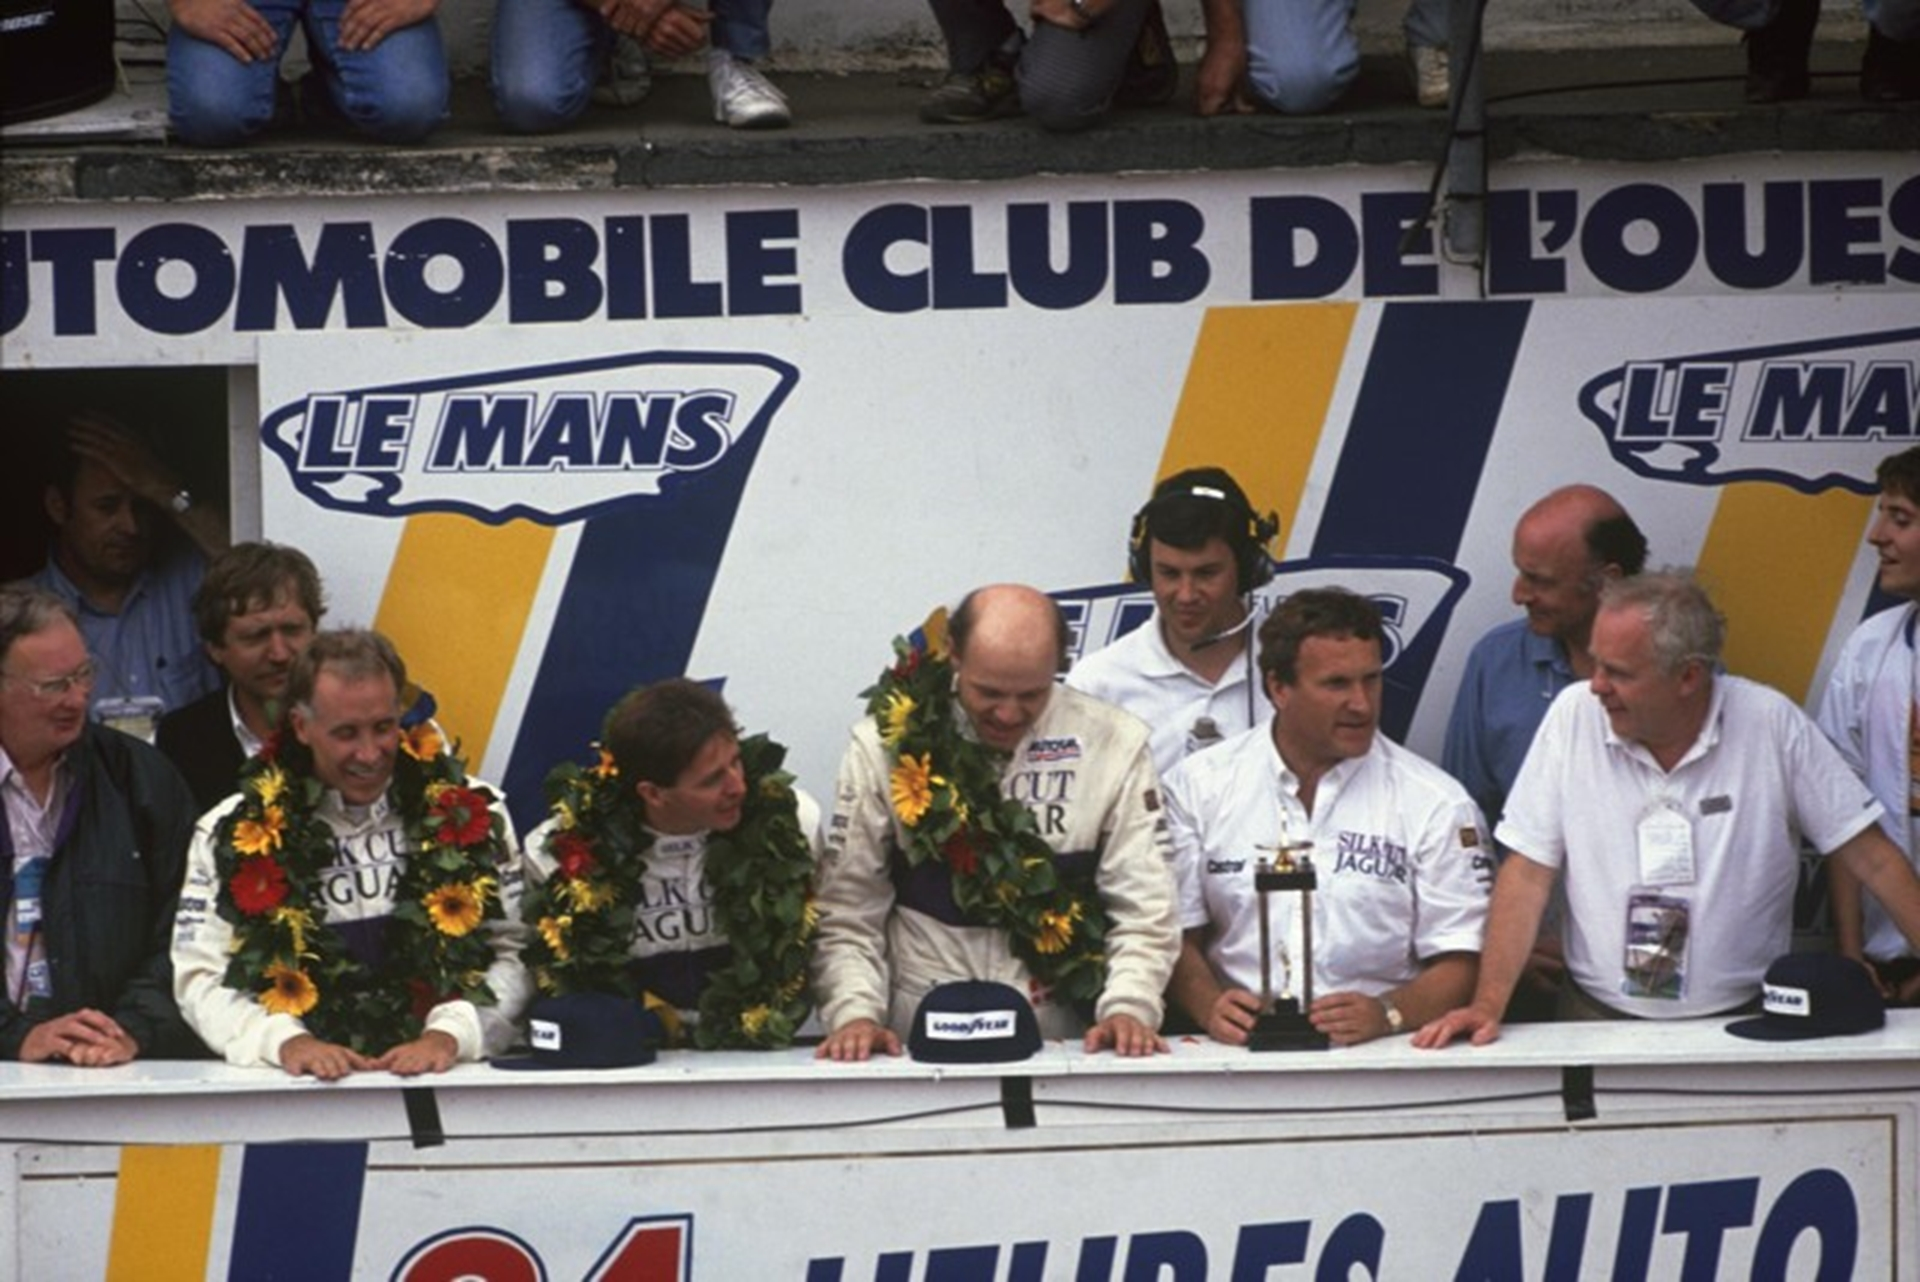 Martin Brundle winning at Le Mans in 1990